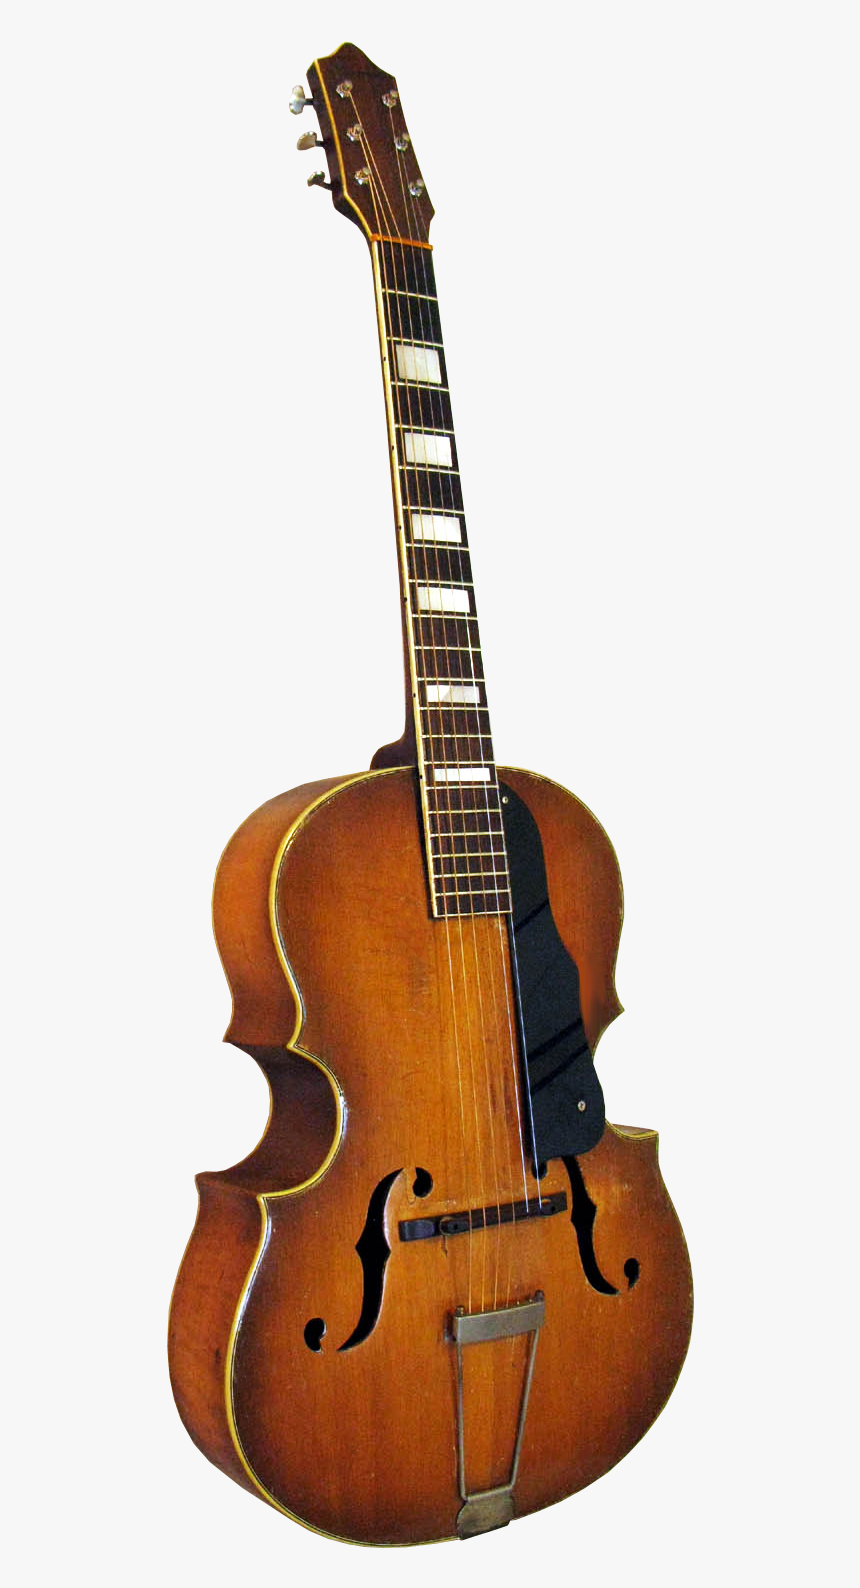 Cello Guitar Transparent Image Antiques And Collectibles, HD Png Download, Free Download